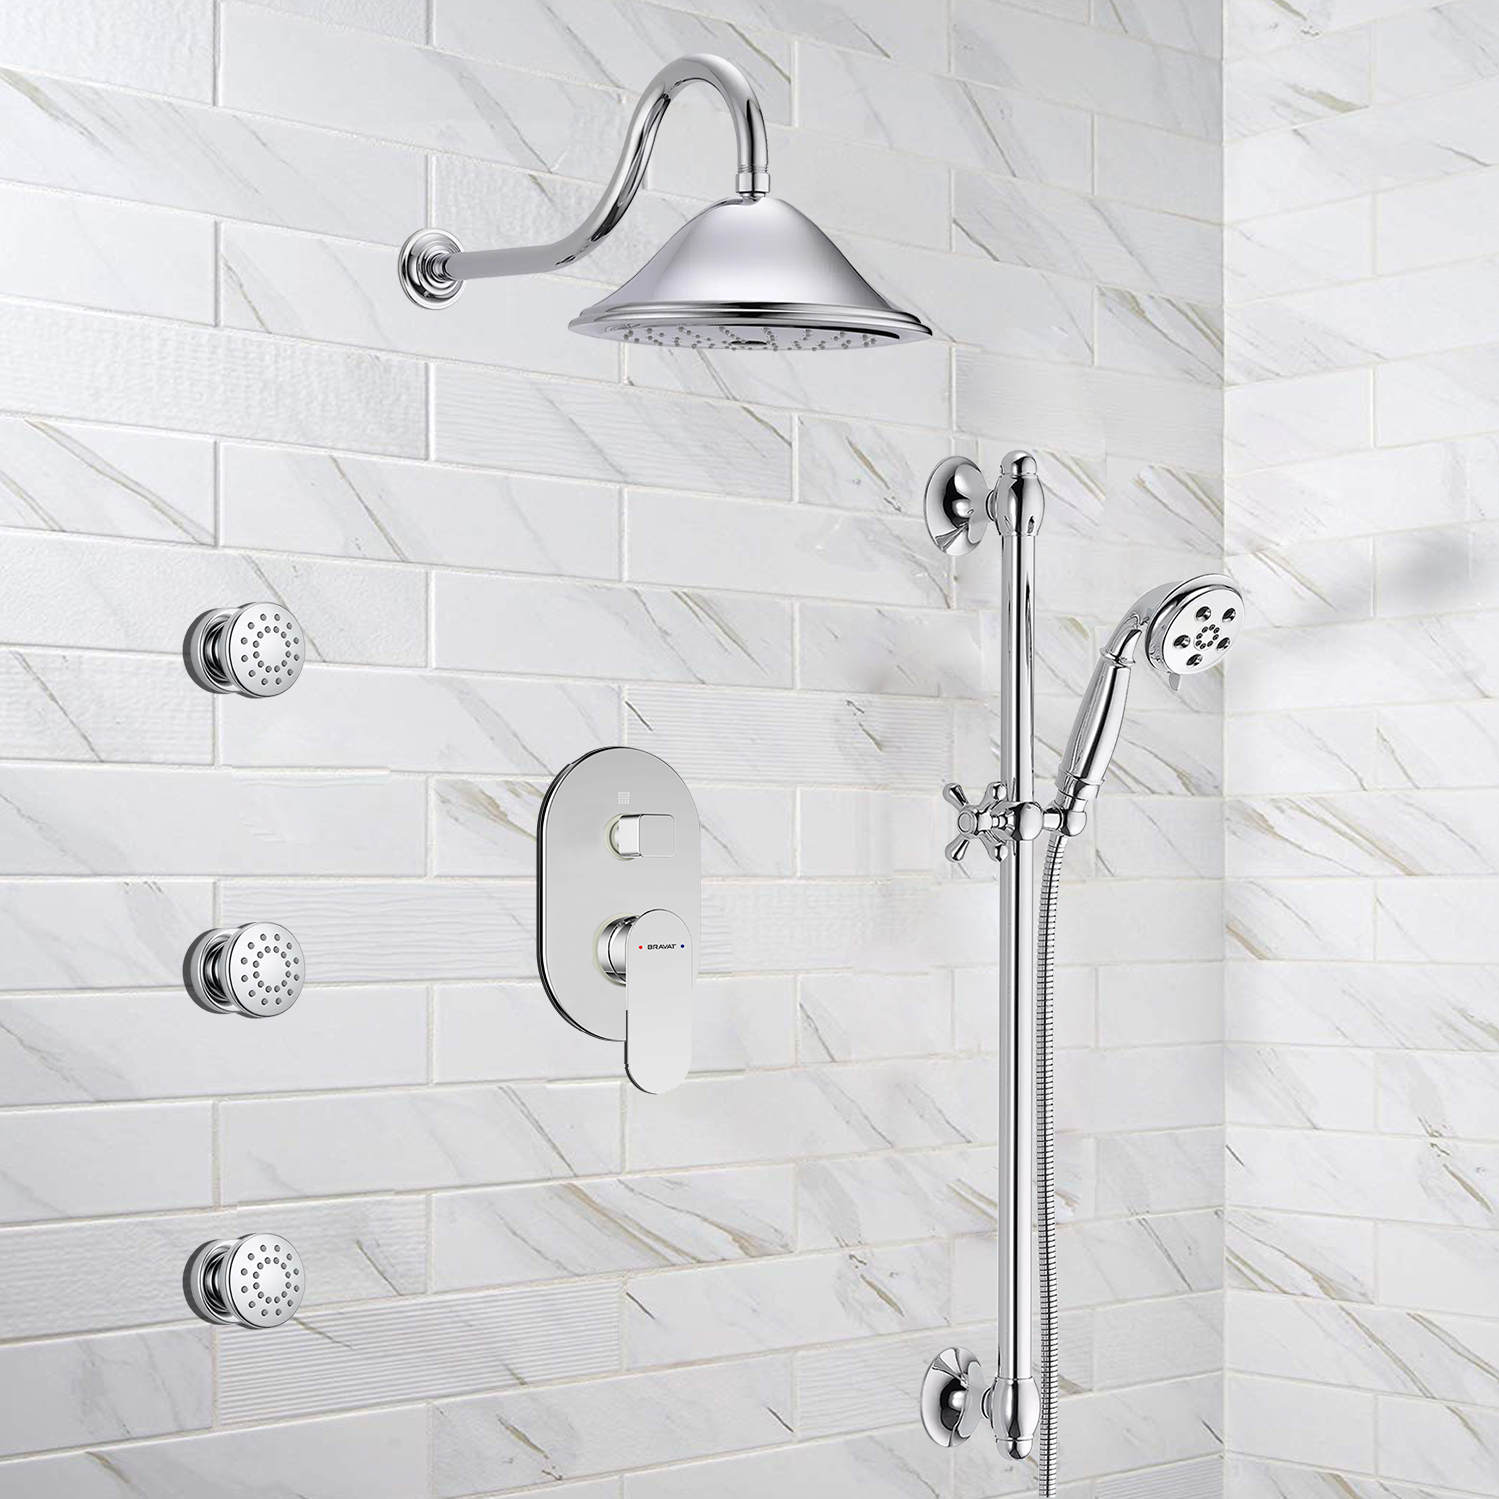 Bravat Wall Mounted Round Shower Set With Valve Mixer 3-Way Concealed And Three Body Jets In Chrome